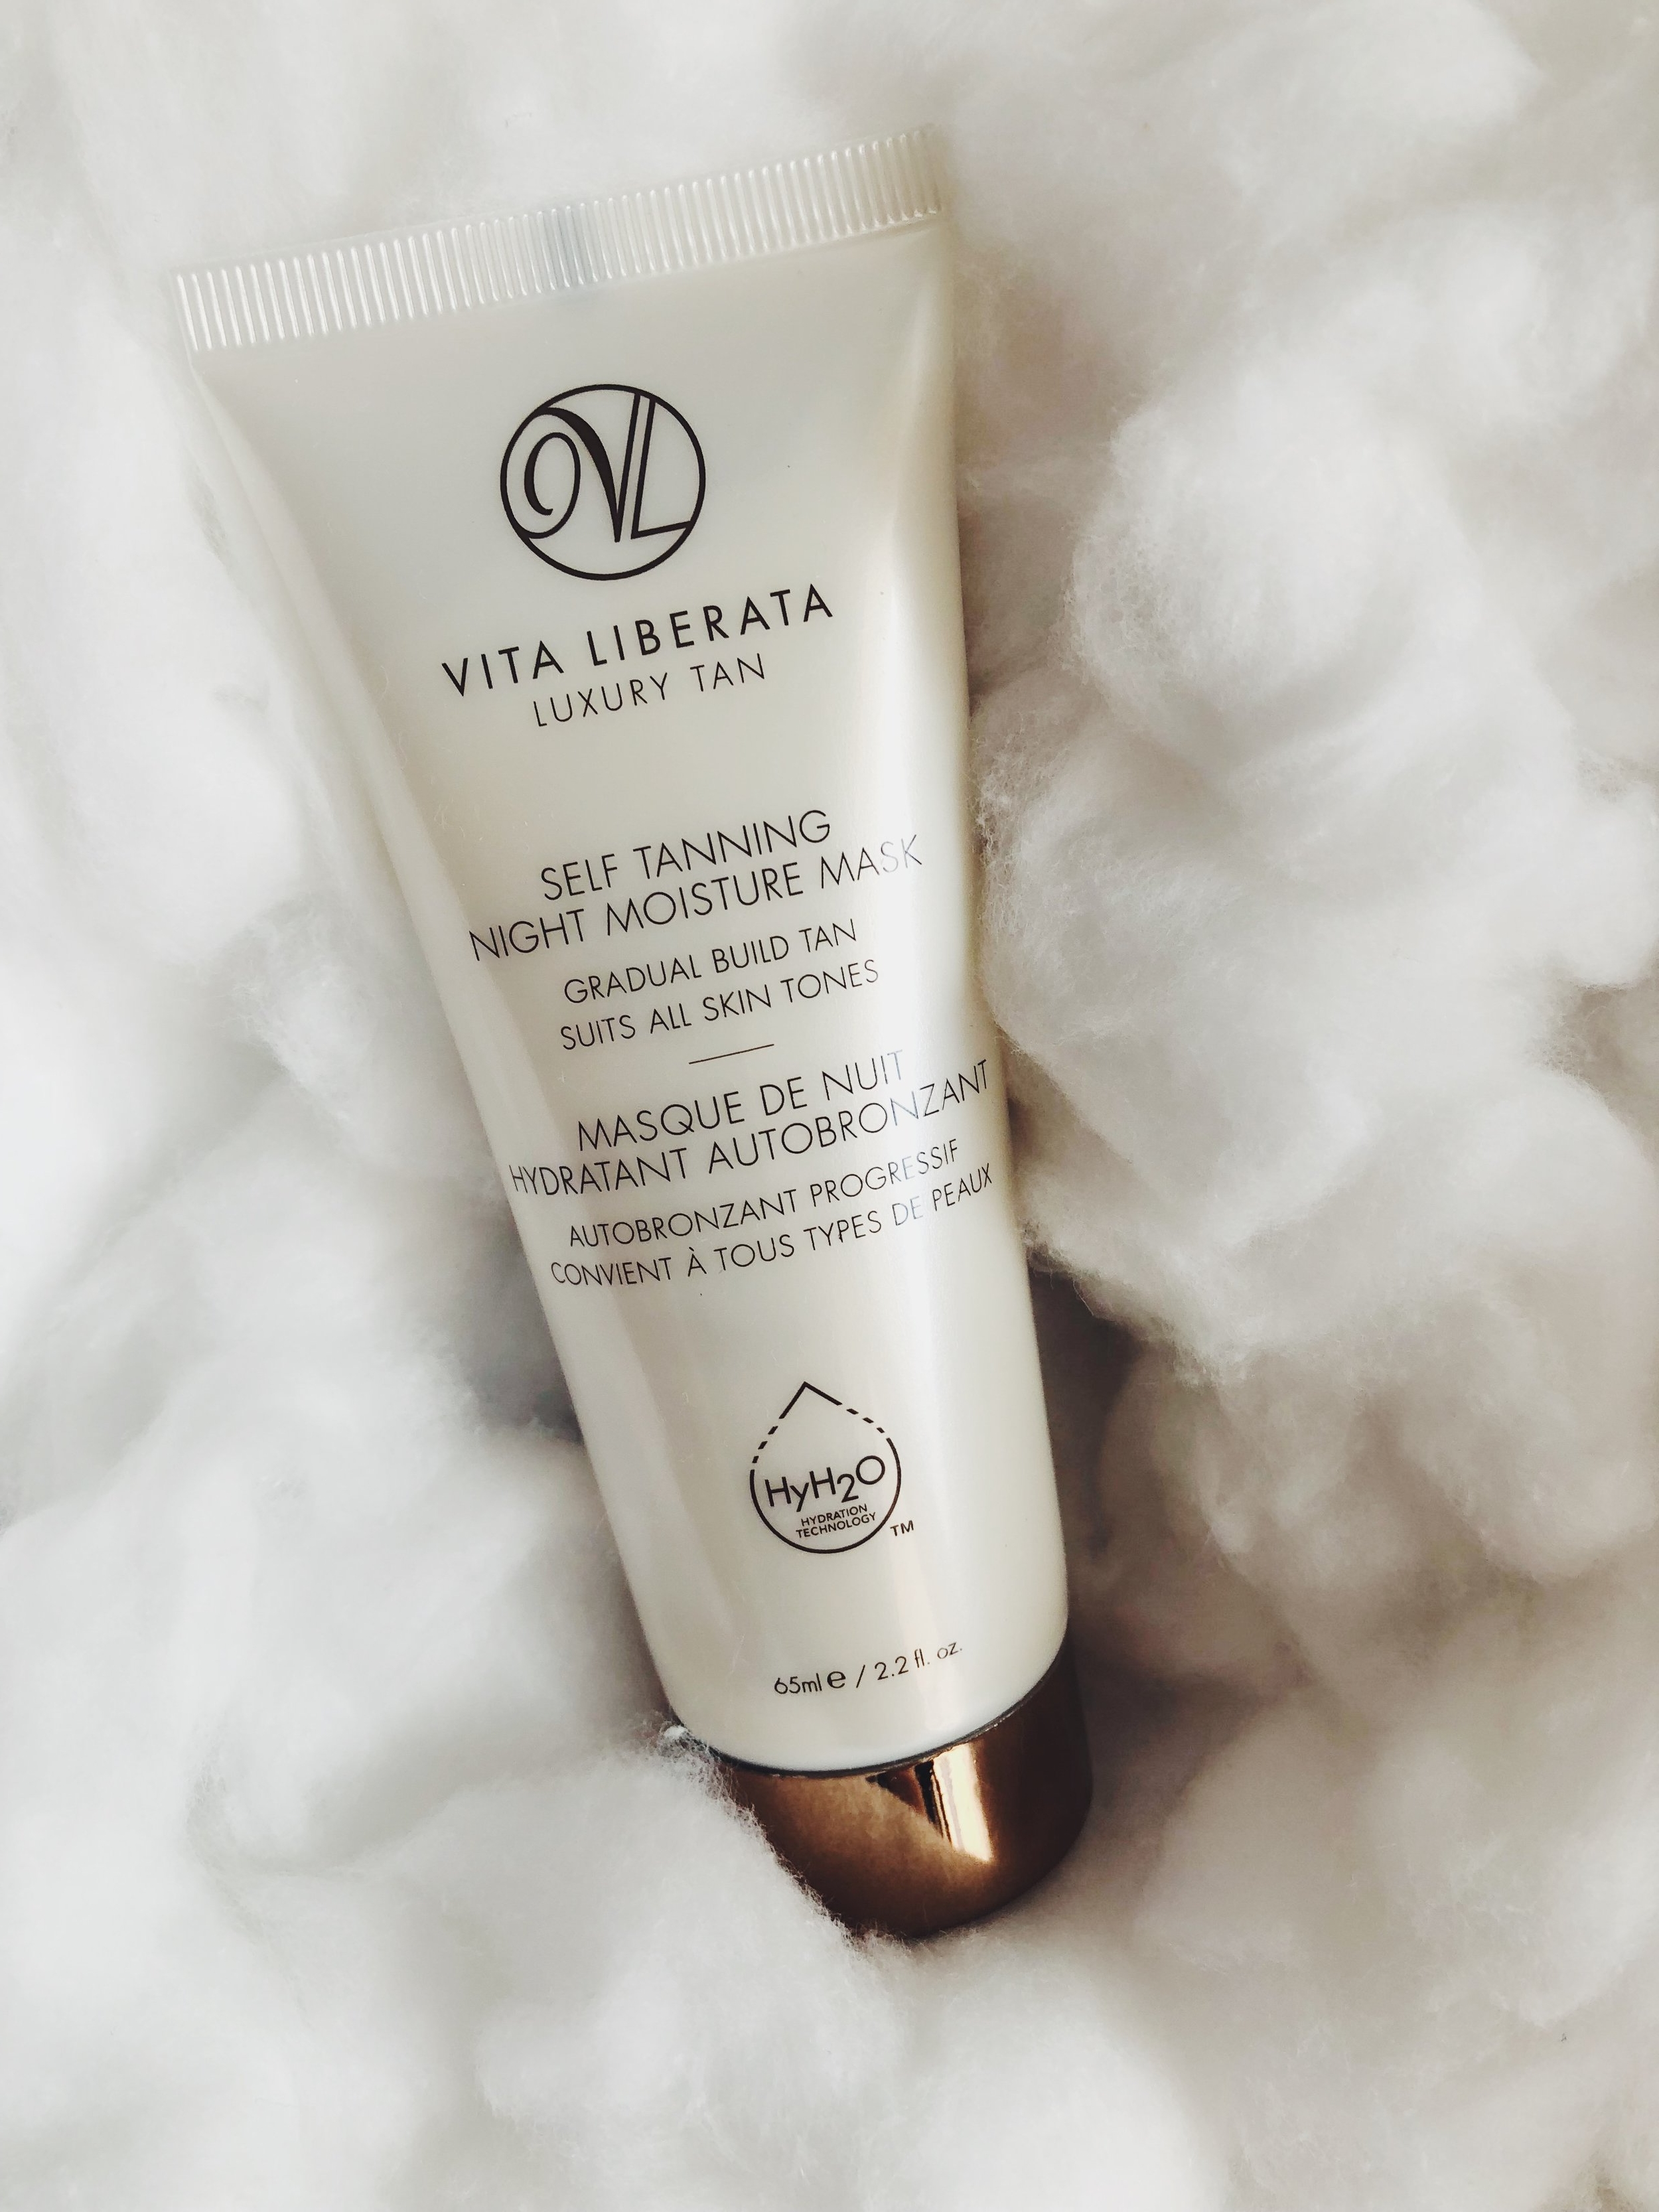 GETTING A TAN OVER NIGHT? YES, PLEASE, COUNT ME IN BIG TIME. THE LUXURIOUS   SELF TANNING NIGHT MOISTURE MASK BY VITA LIBERATA   WORKS OVER NIGHT. SO YOU WAKE UP WITH A NATURAL SUNKISSED GLOW AND A HYDRATED SKIN. SO IF YOU DON'T HAVE TIME FOR A VACATION OR SIMPLY DON'T WANT TO PUT YOUR FACE IN THE SUN TOO MUCH, THIS IS YOUR PRODUCT. AND: IMAGINE IT USING IT IN THE WINTER. YOU WILL LOOK LIKE COMING STRAIGHT FROM AN ISLAND. -T